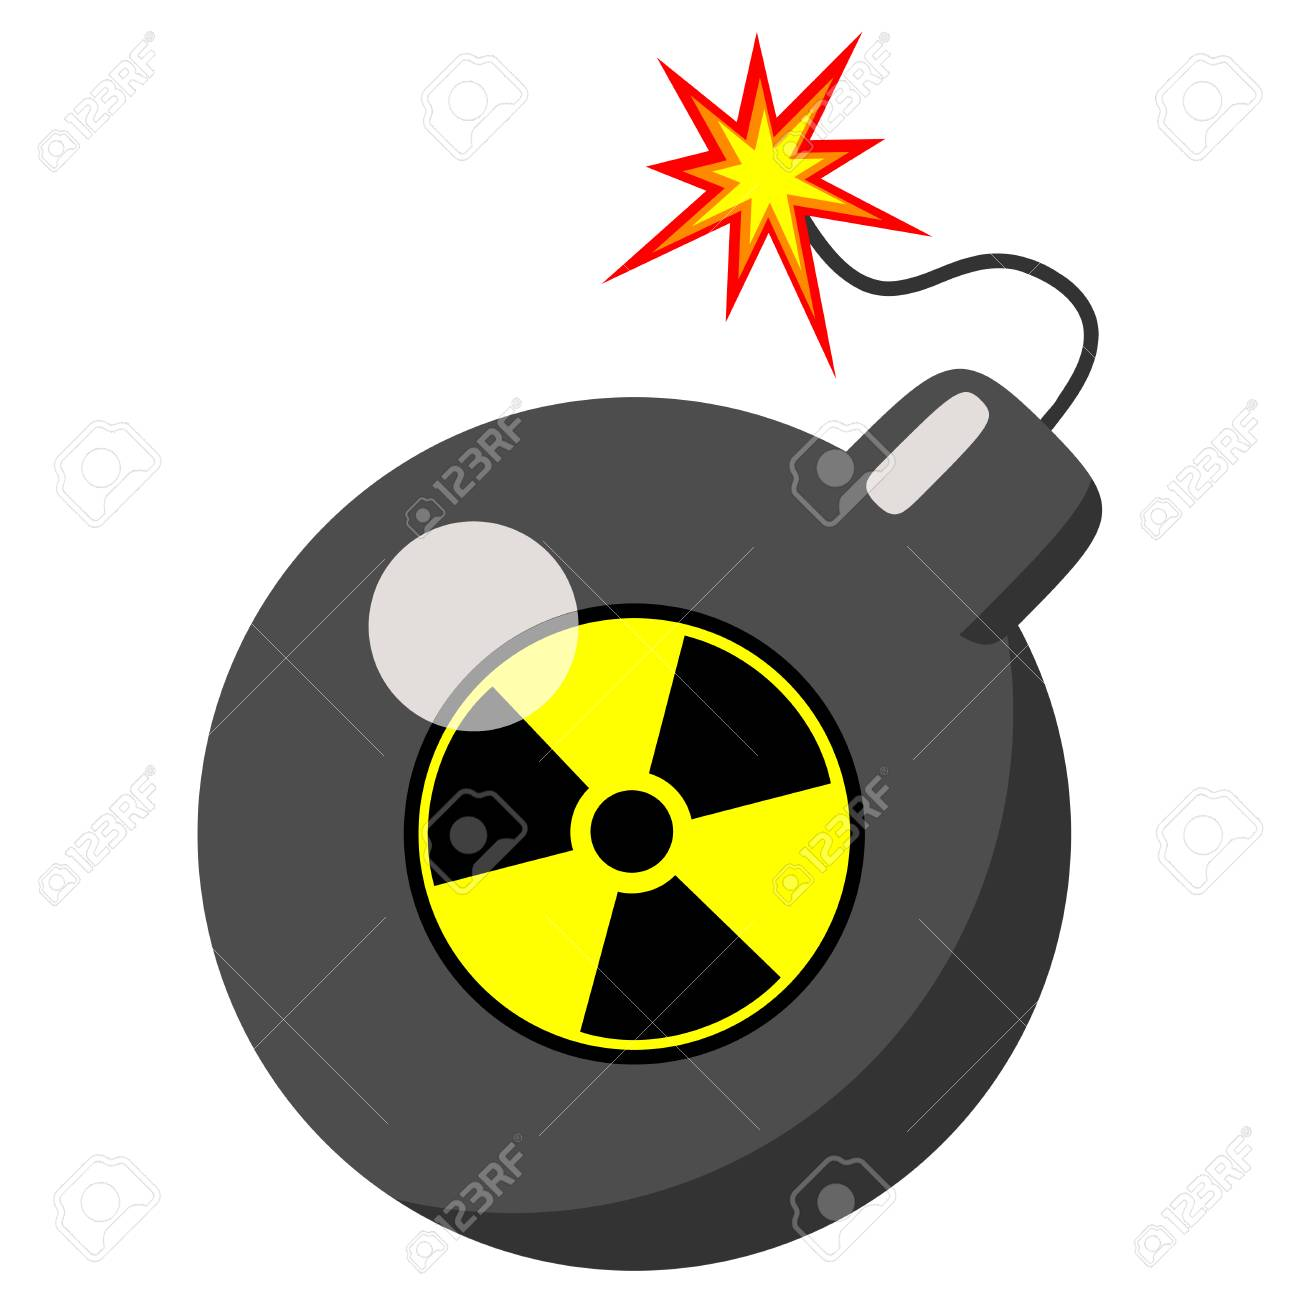 Bomb clipart bombshell. Atomic free download clip